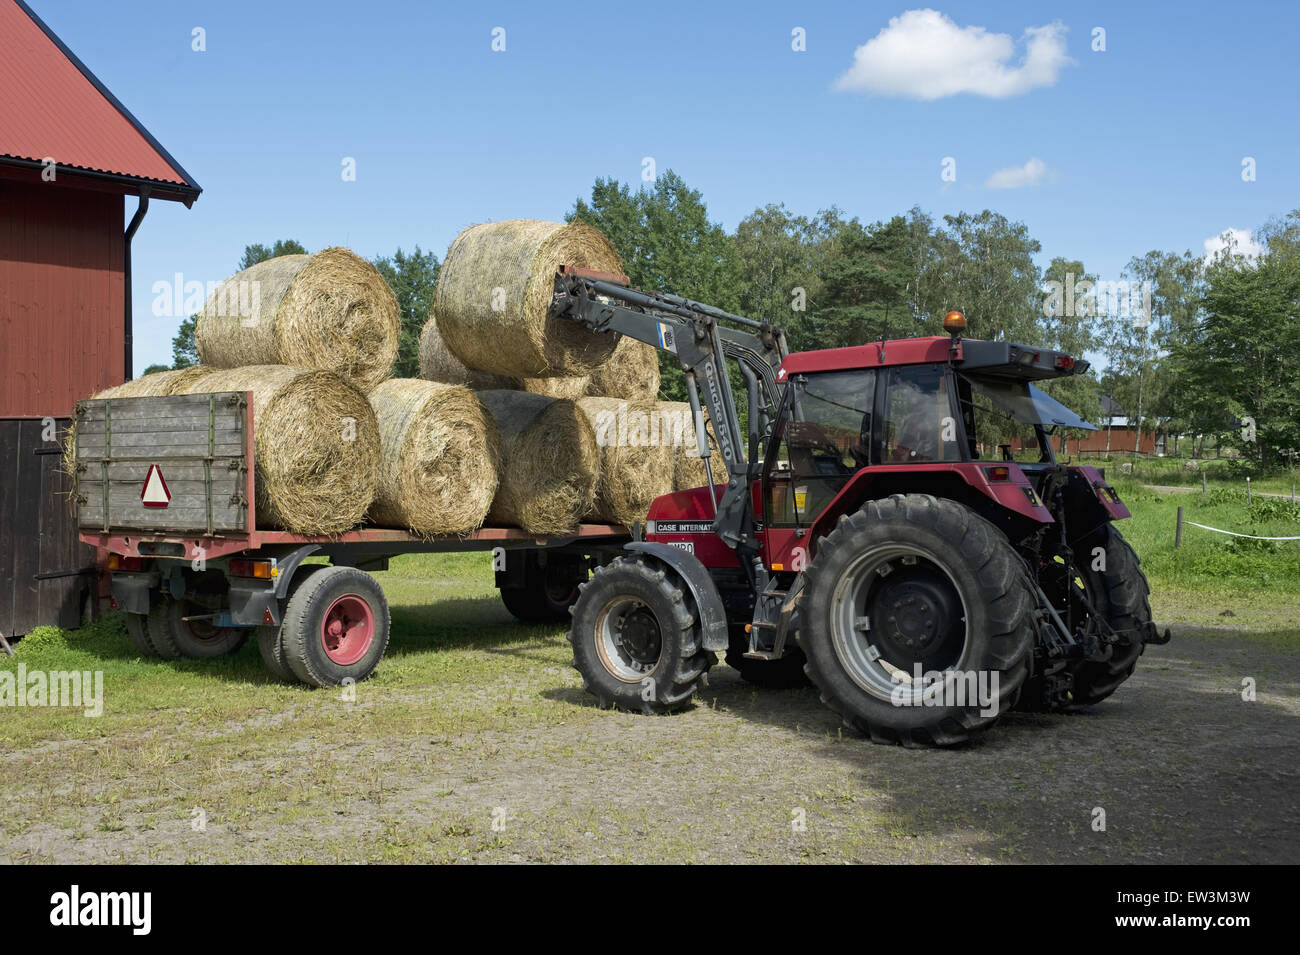 Hay Tractor With Loader : Loading round bale of hay into hayloft with front loader